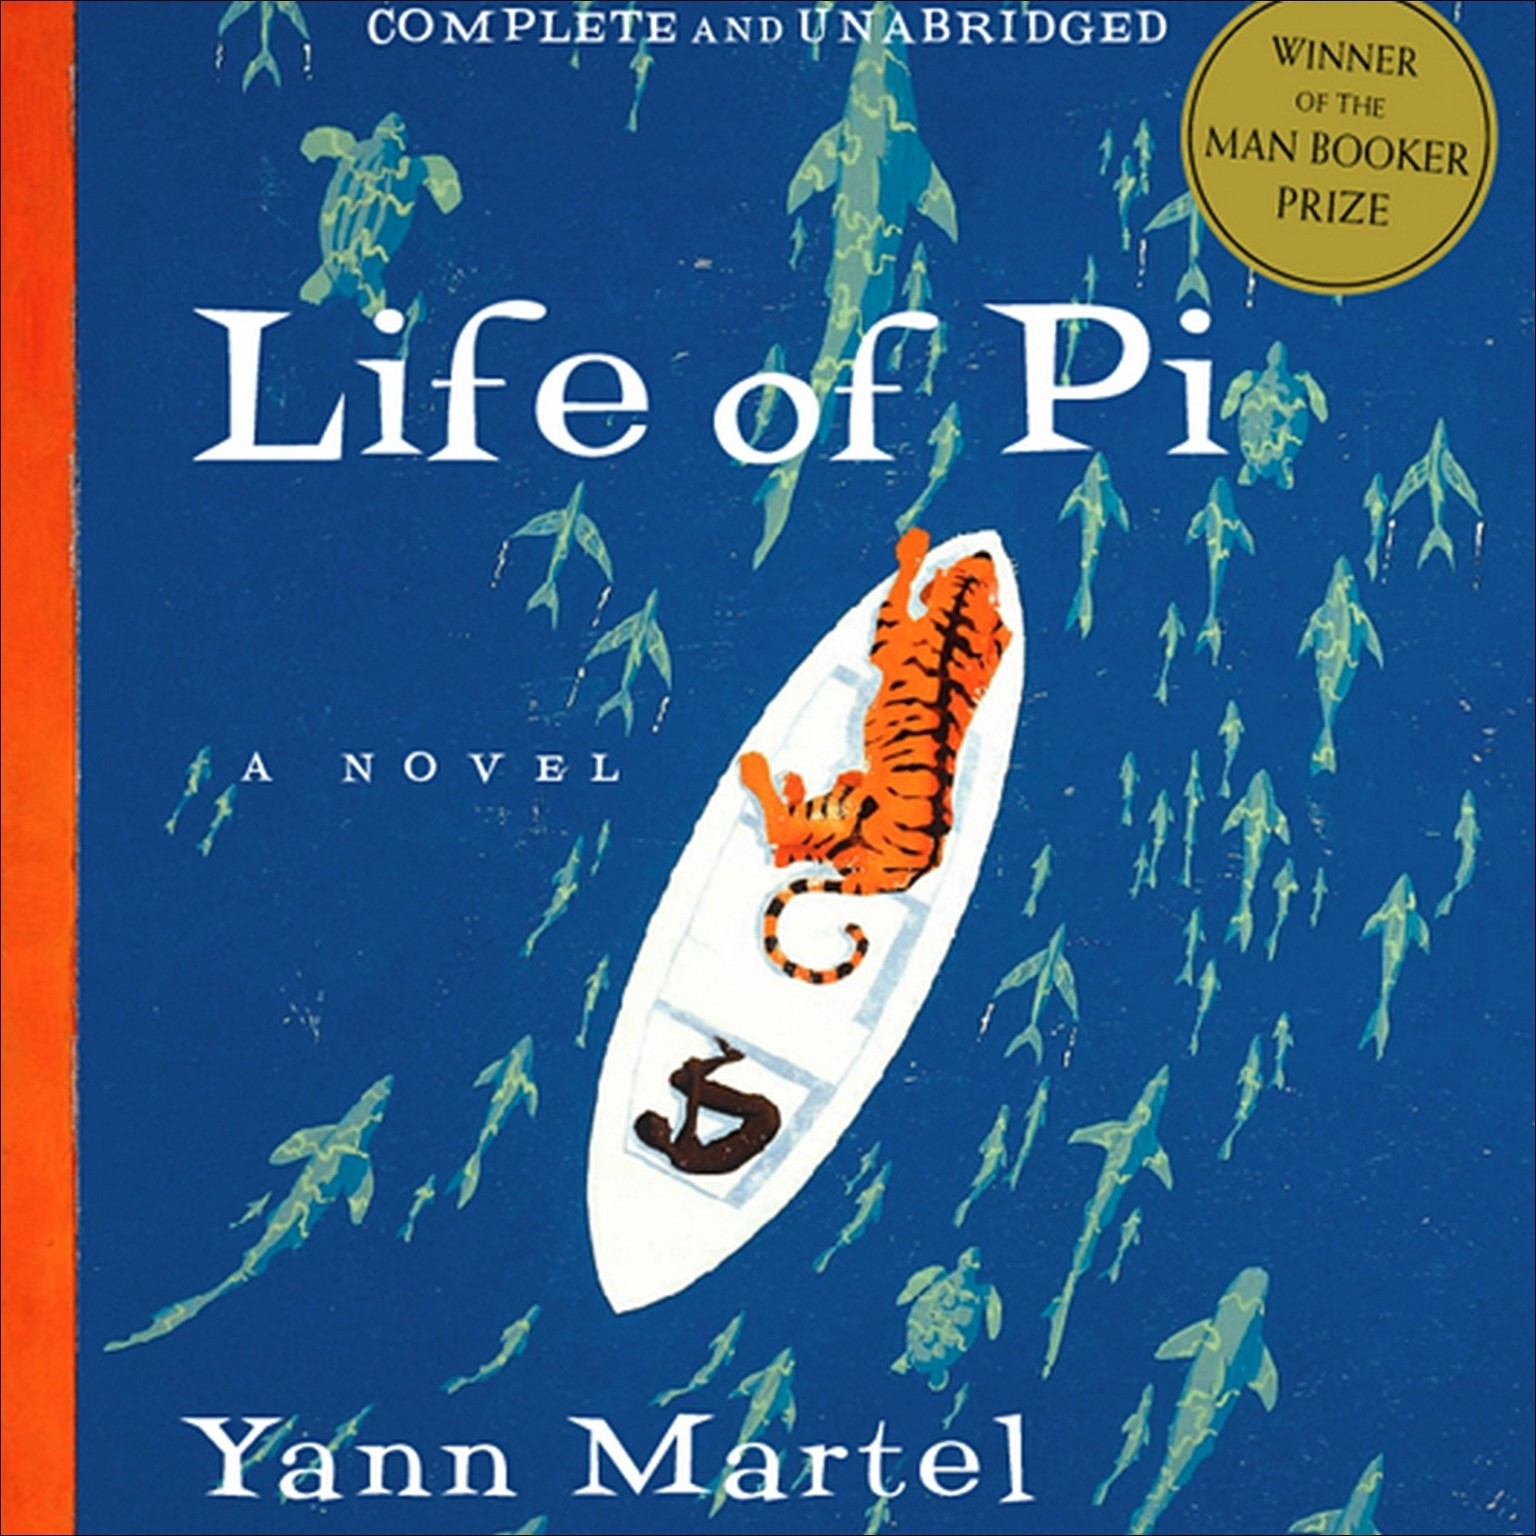 a review on a castaways life in the life of pi by yann martel The deconstructive project of yann martel's life of pi is to replace the enlightenment belief in the power of reason to liberate humanity with a belief in the like pi's meeting with the french castaway rev of life of pi, by yann martel new york review of books 27 mar 2003: 17.